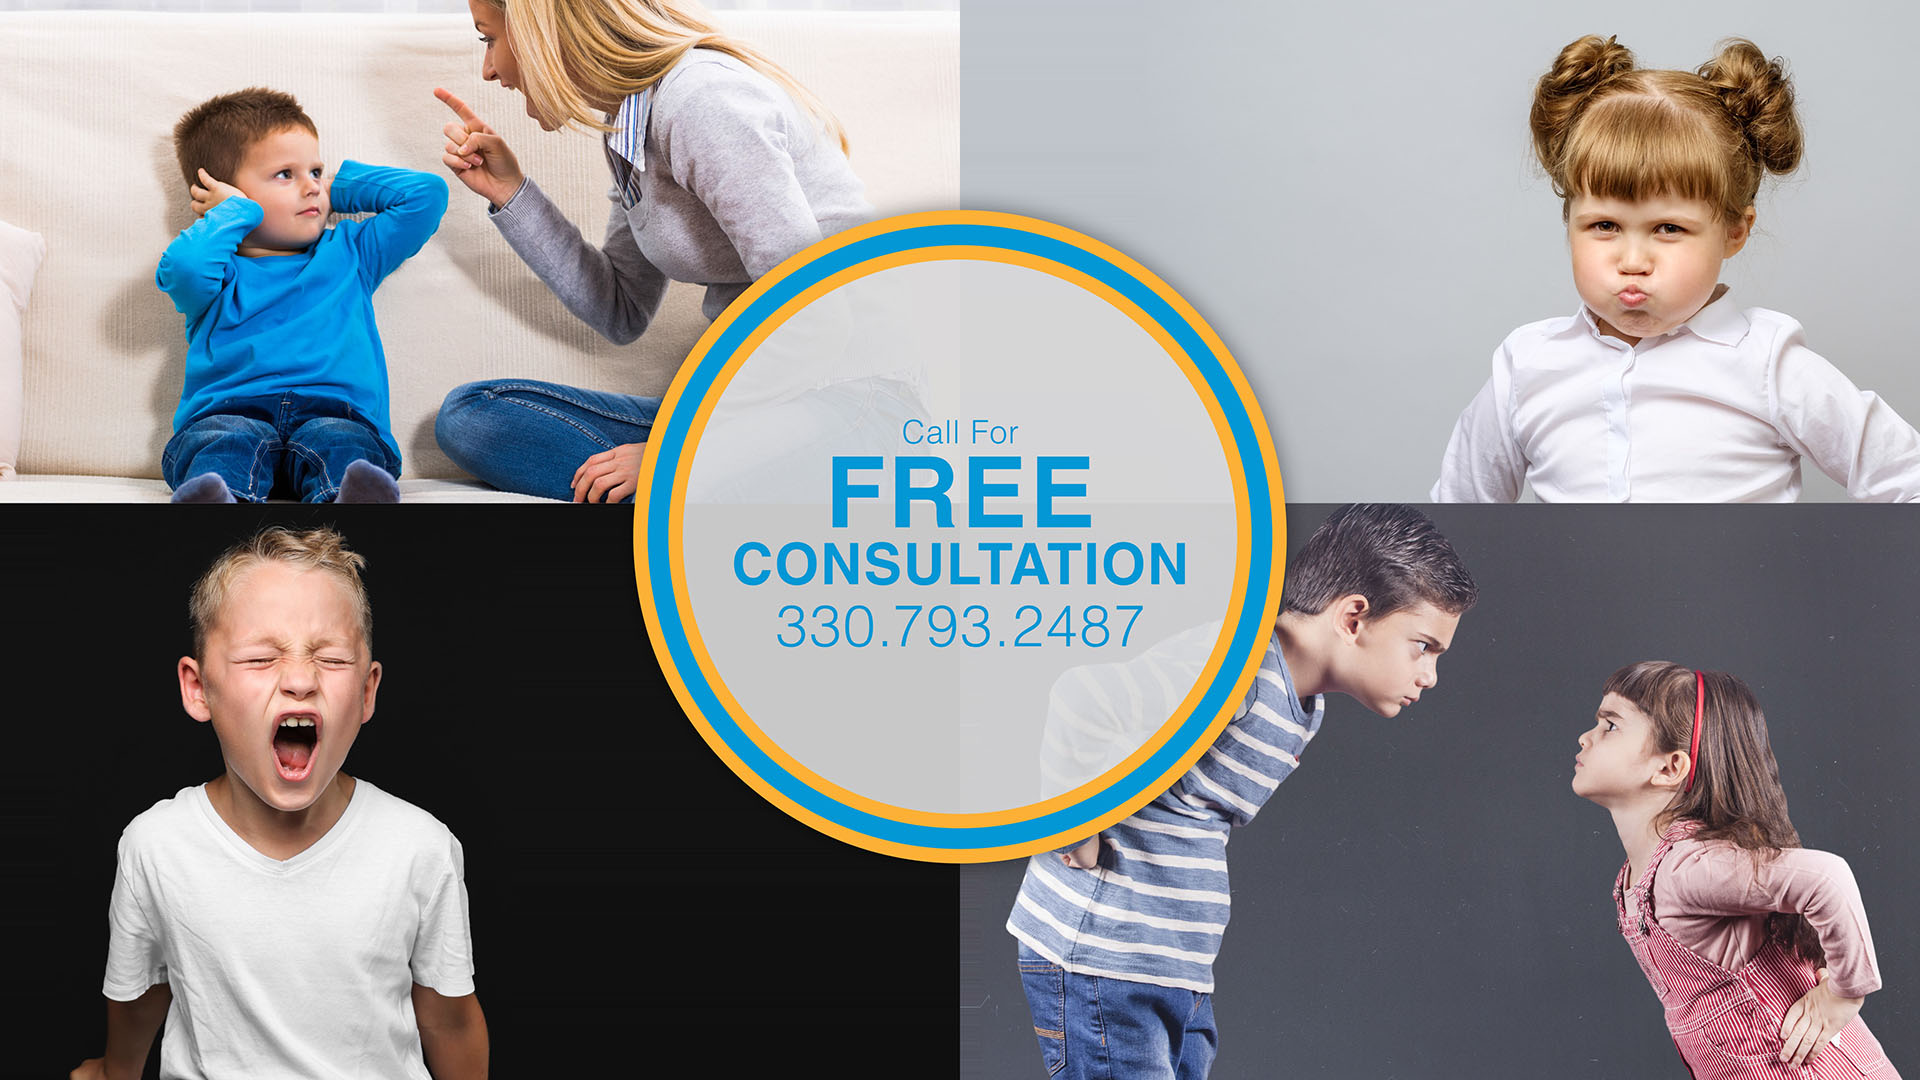 Call for a free consultation - 330.793.2487